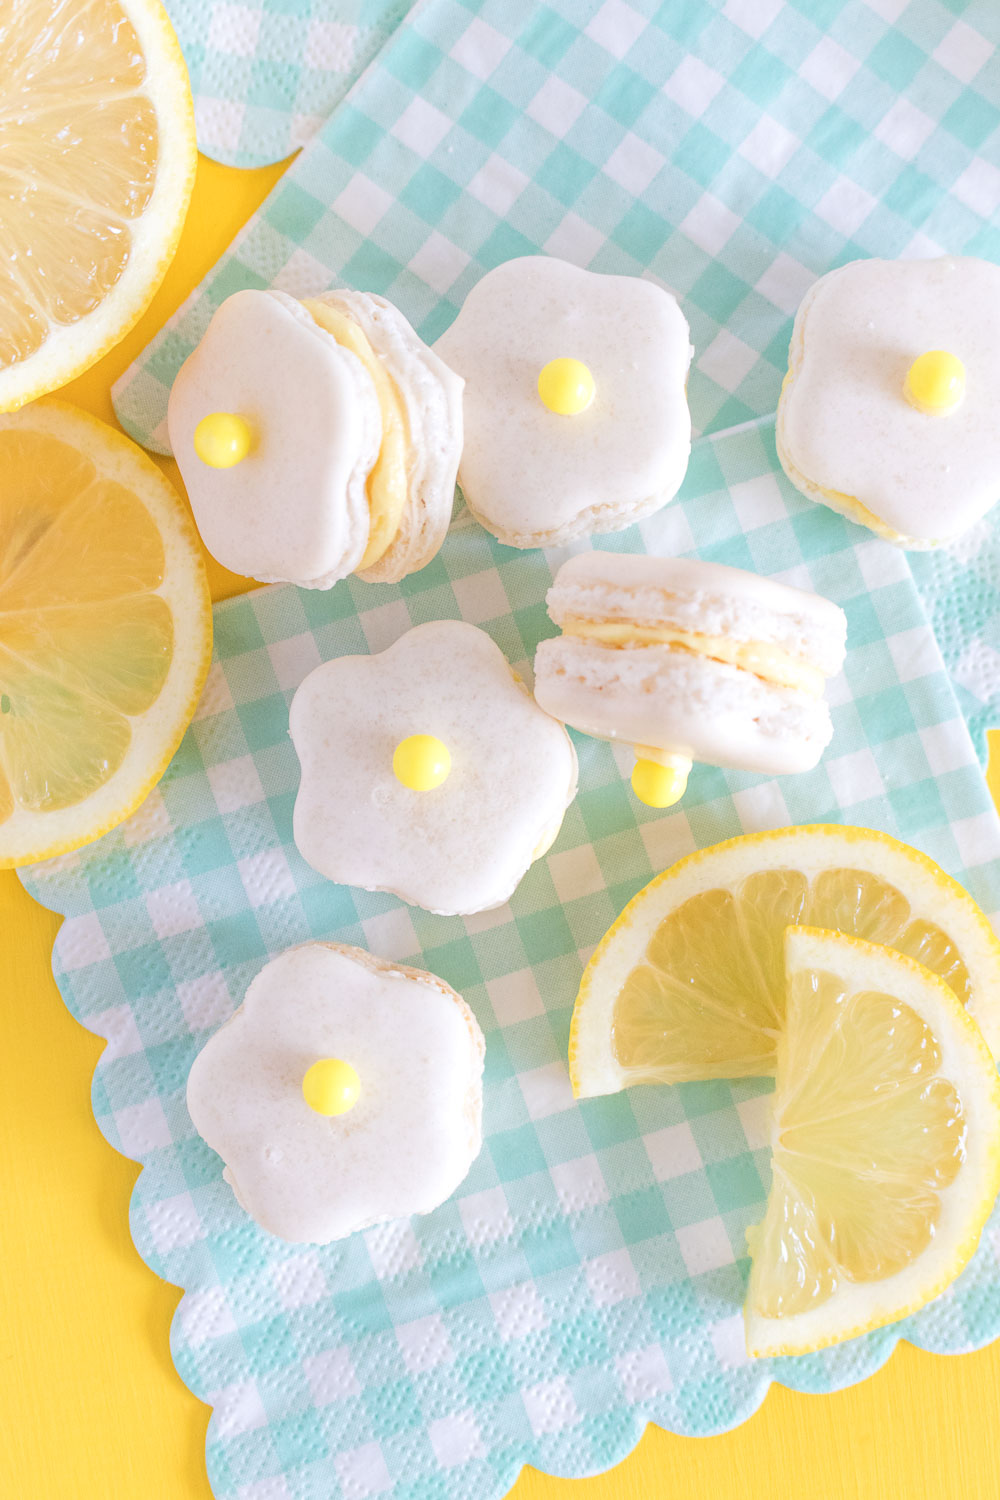 Flower Power! Lemon Daisy Macarons | Club Crafted